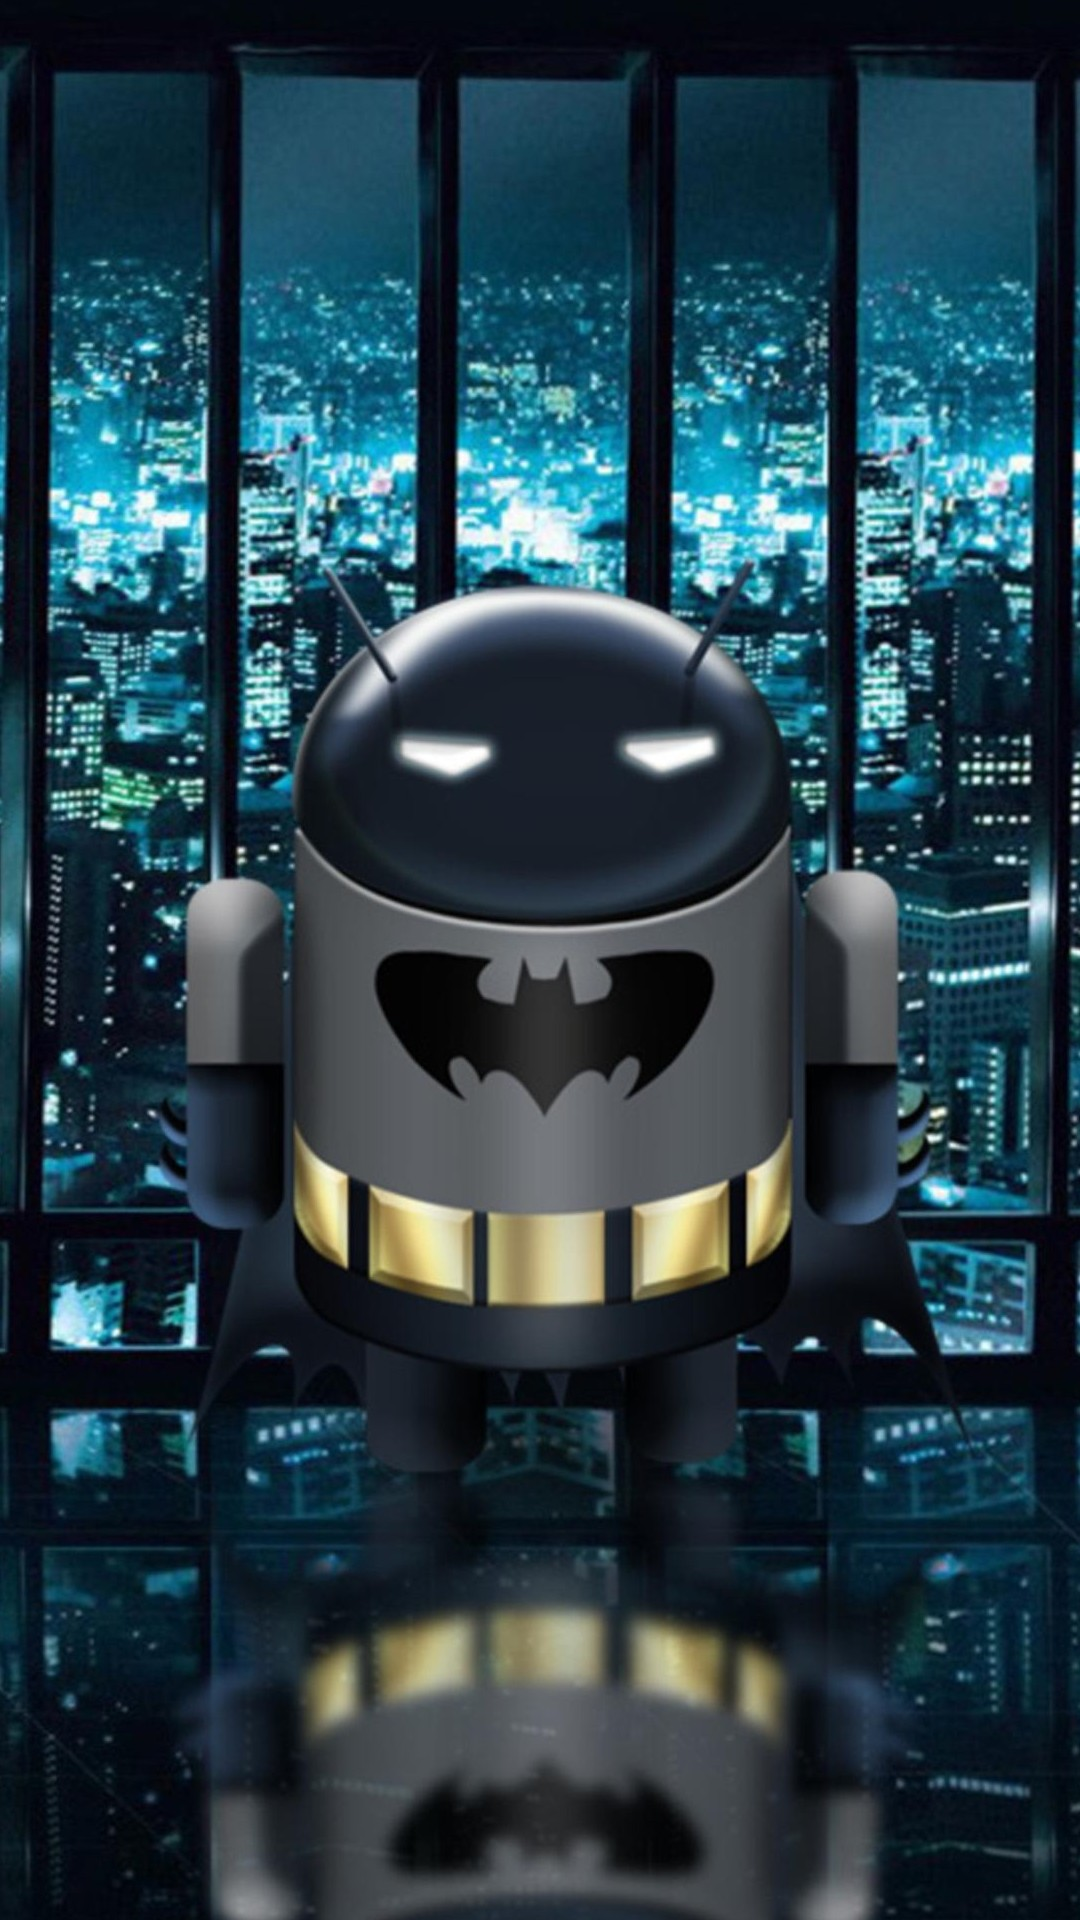 Hd wallpapers for android - Batman Android Mobile Phone Hd Wallpaper 1080x1920